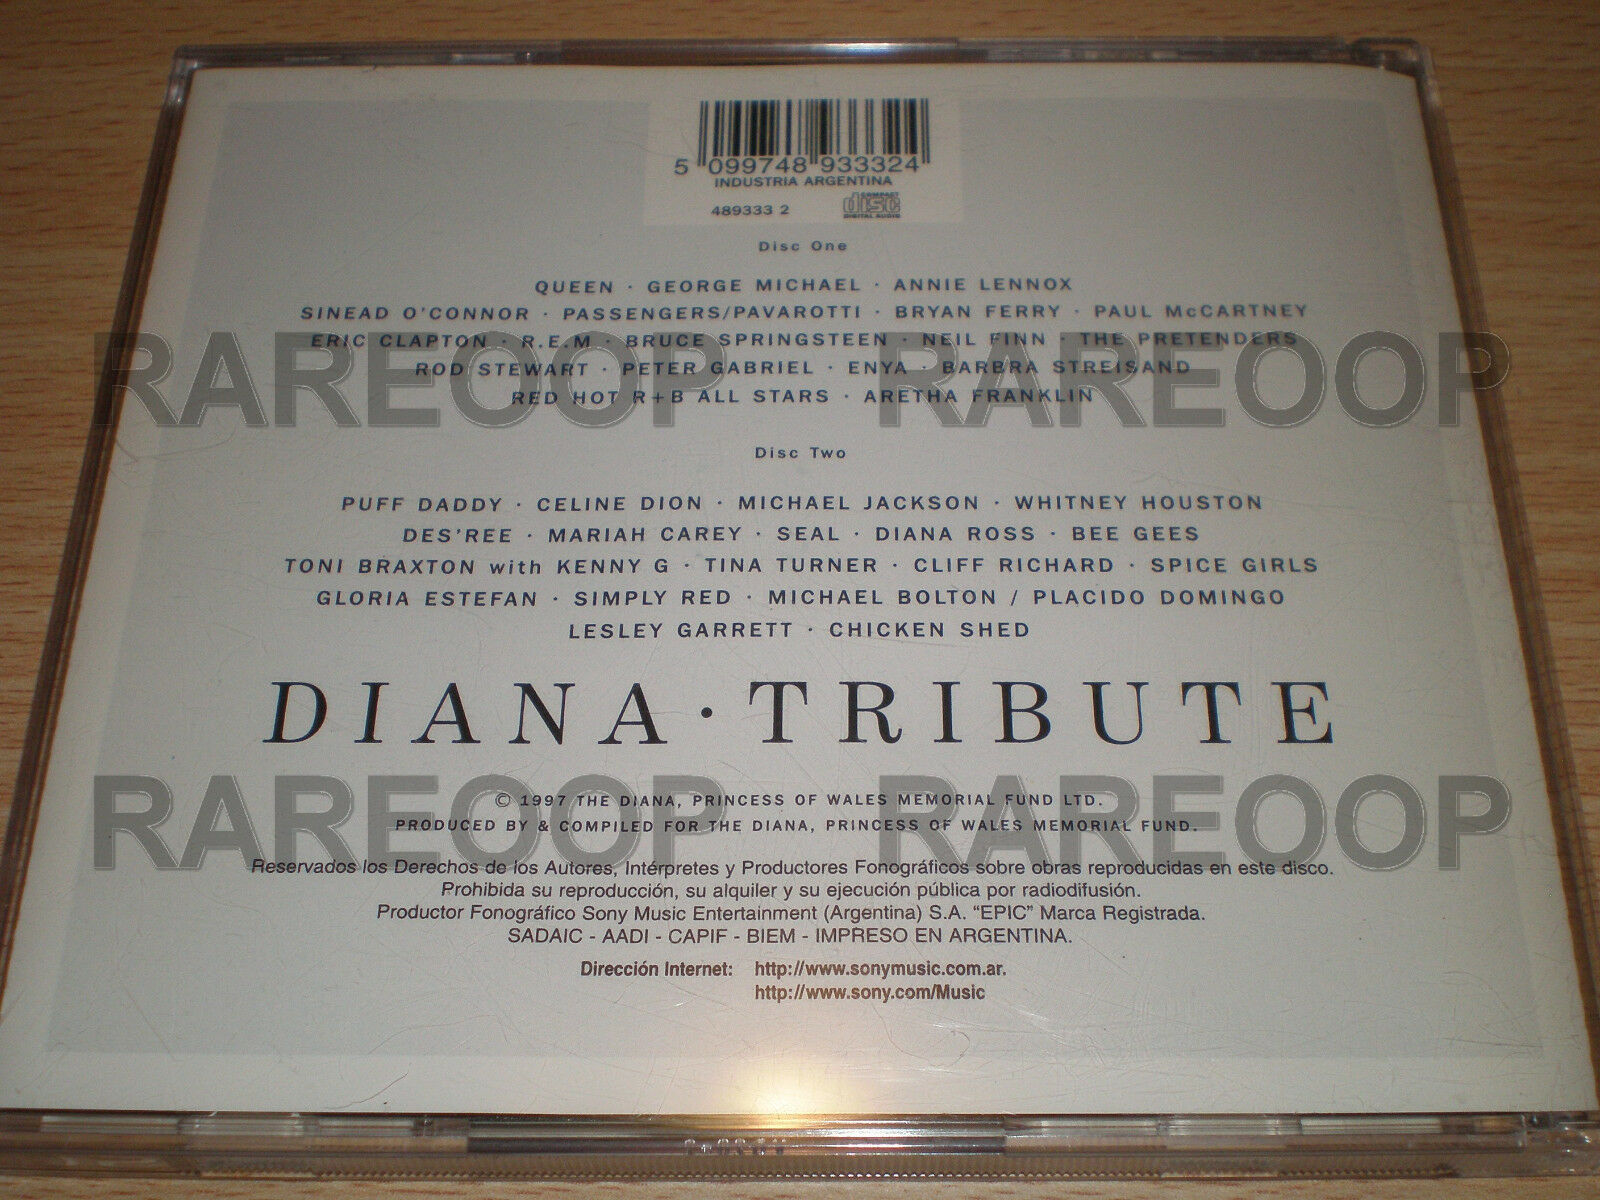 Diana Tribute (2cd) Queen McCartney Spice Girls Michael Jackson Mariah  Carey for sale online | eBay